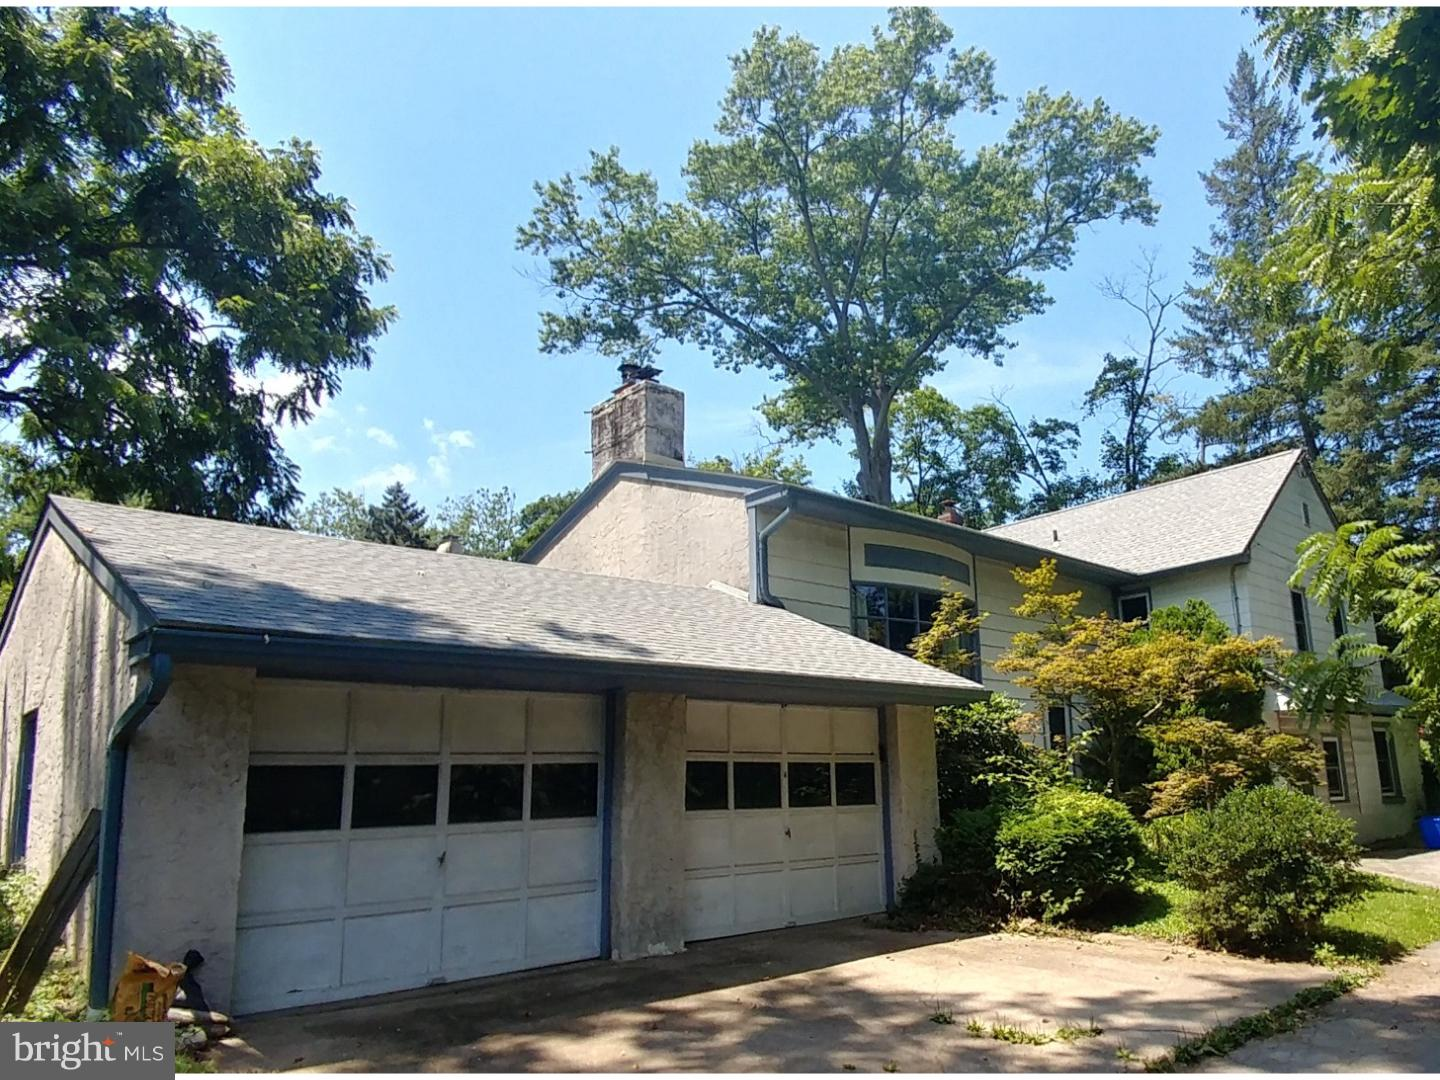 1415 State Road Phoenixville, PA 19460